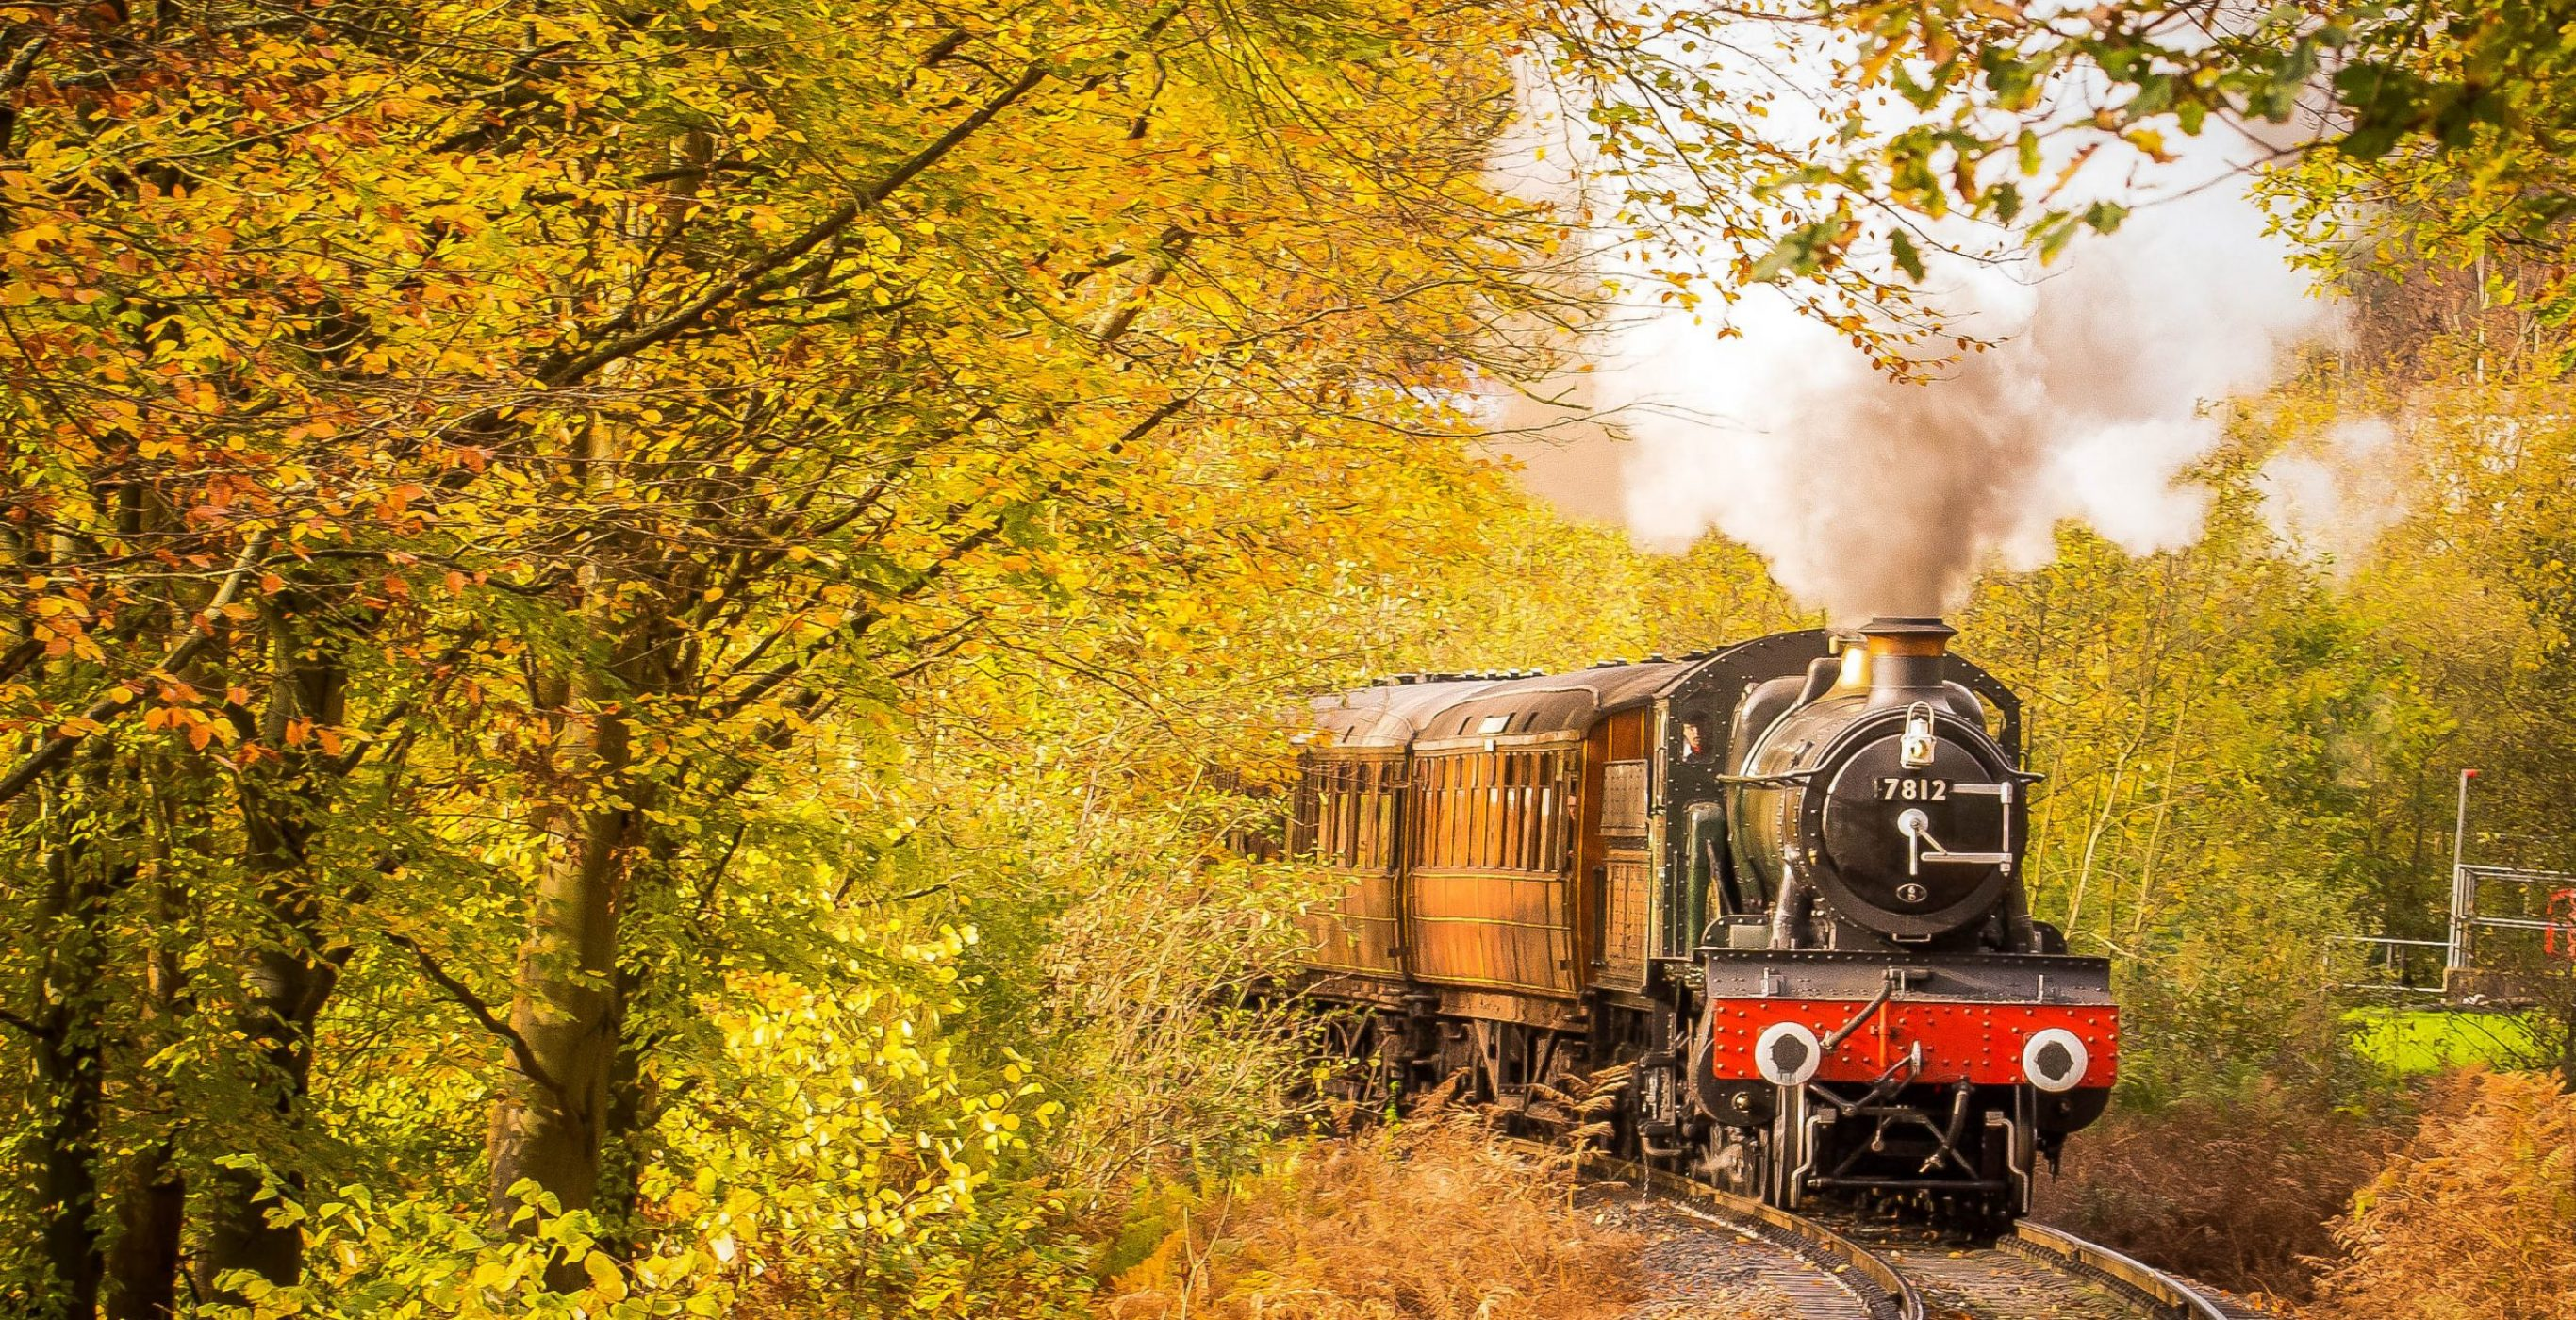 A steam train moves along an old railway surrounded by trees in autumn season, used as a Featured Image for the article entitled